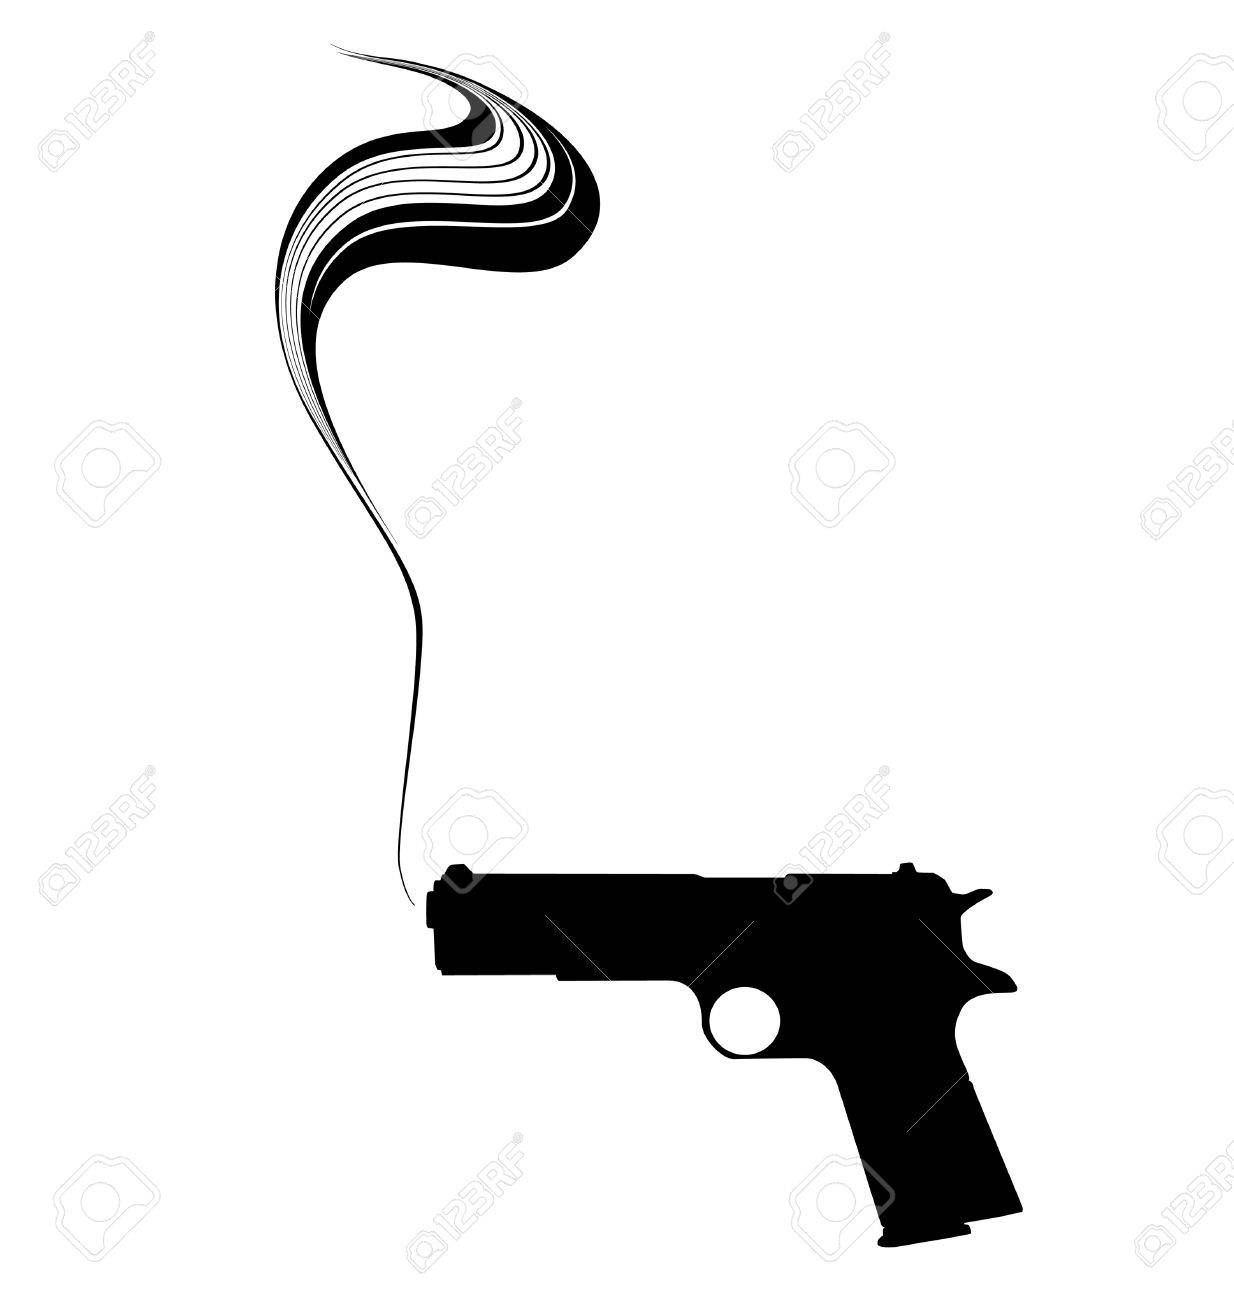 Image result for Smoking gun CARTOON